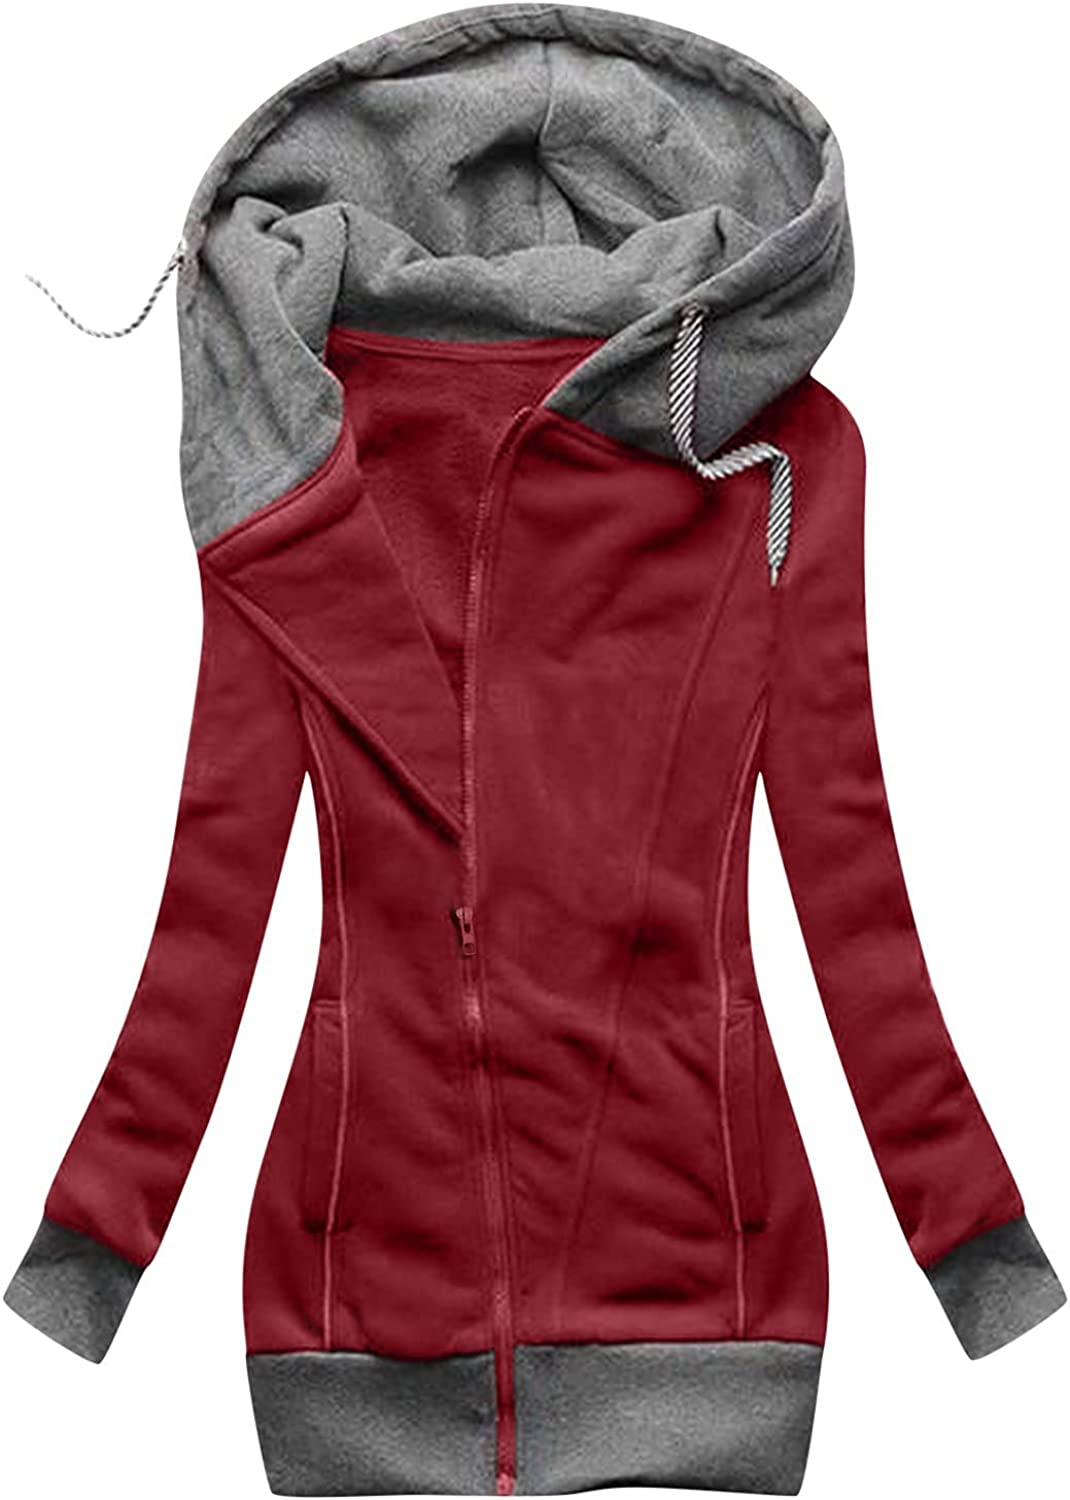 LOSTOX Casual Women's Solid Color Zipper Anoraks Jacket with Hood Drawstring Long Sleeve Outerwear Coat for Women